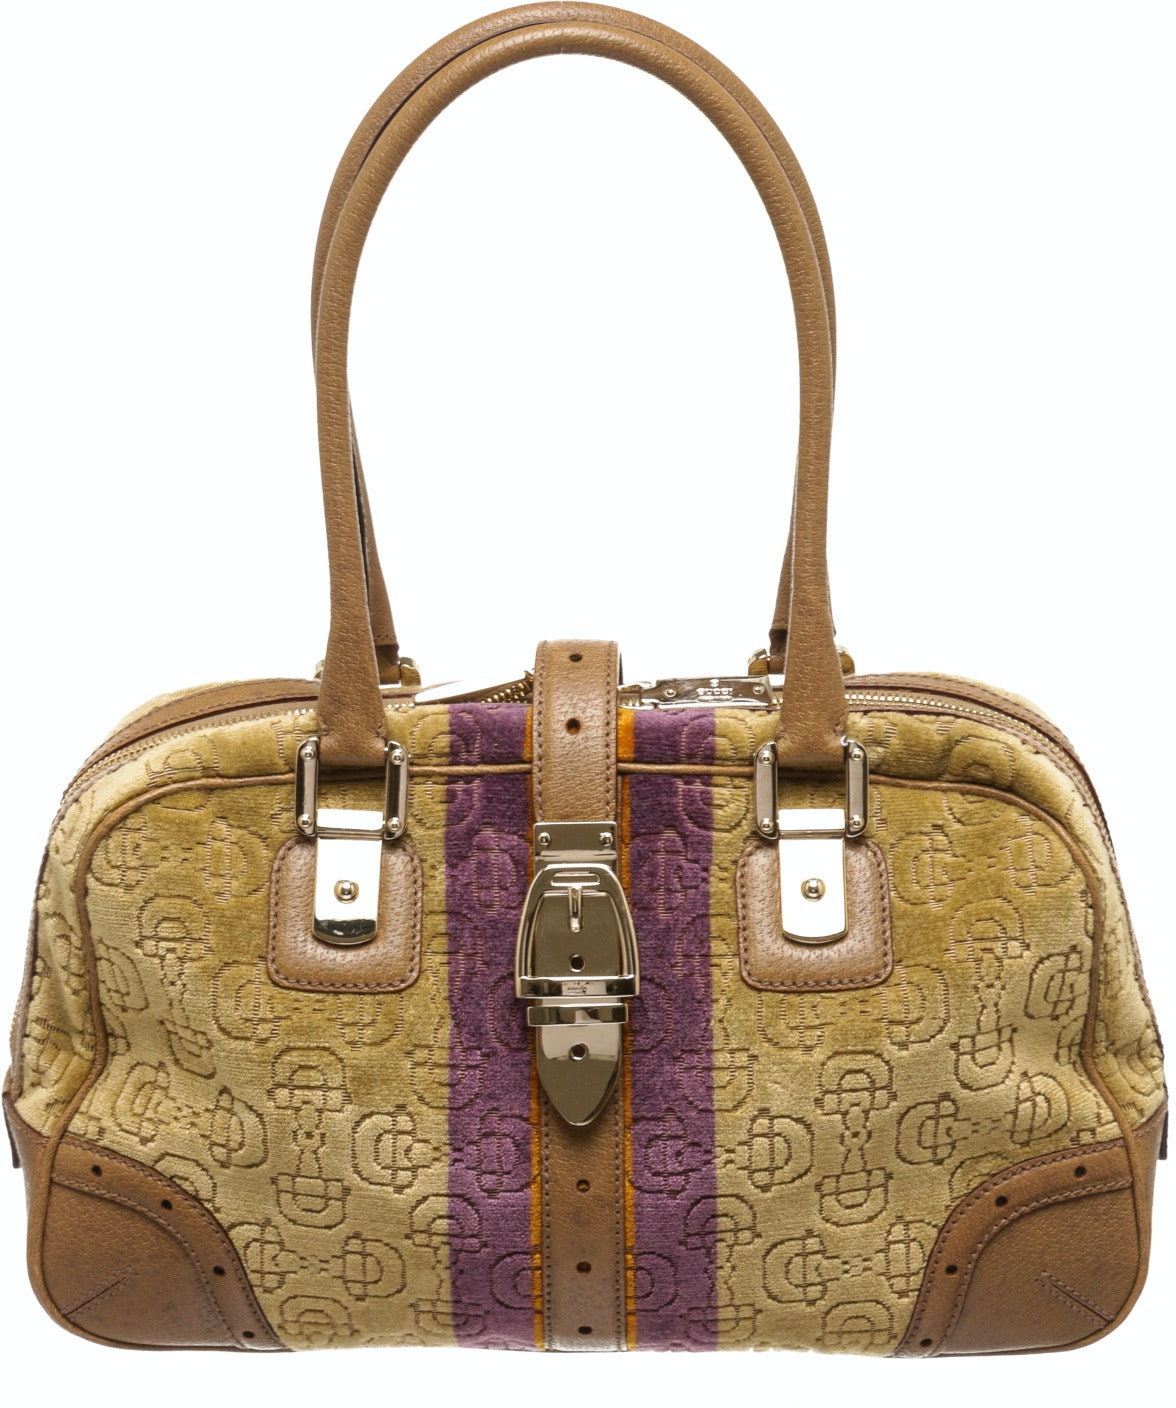 Gucci Horsebit Boston Horsebit Beige,Purple